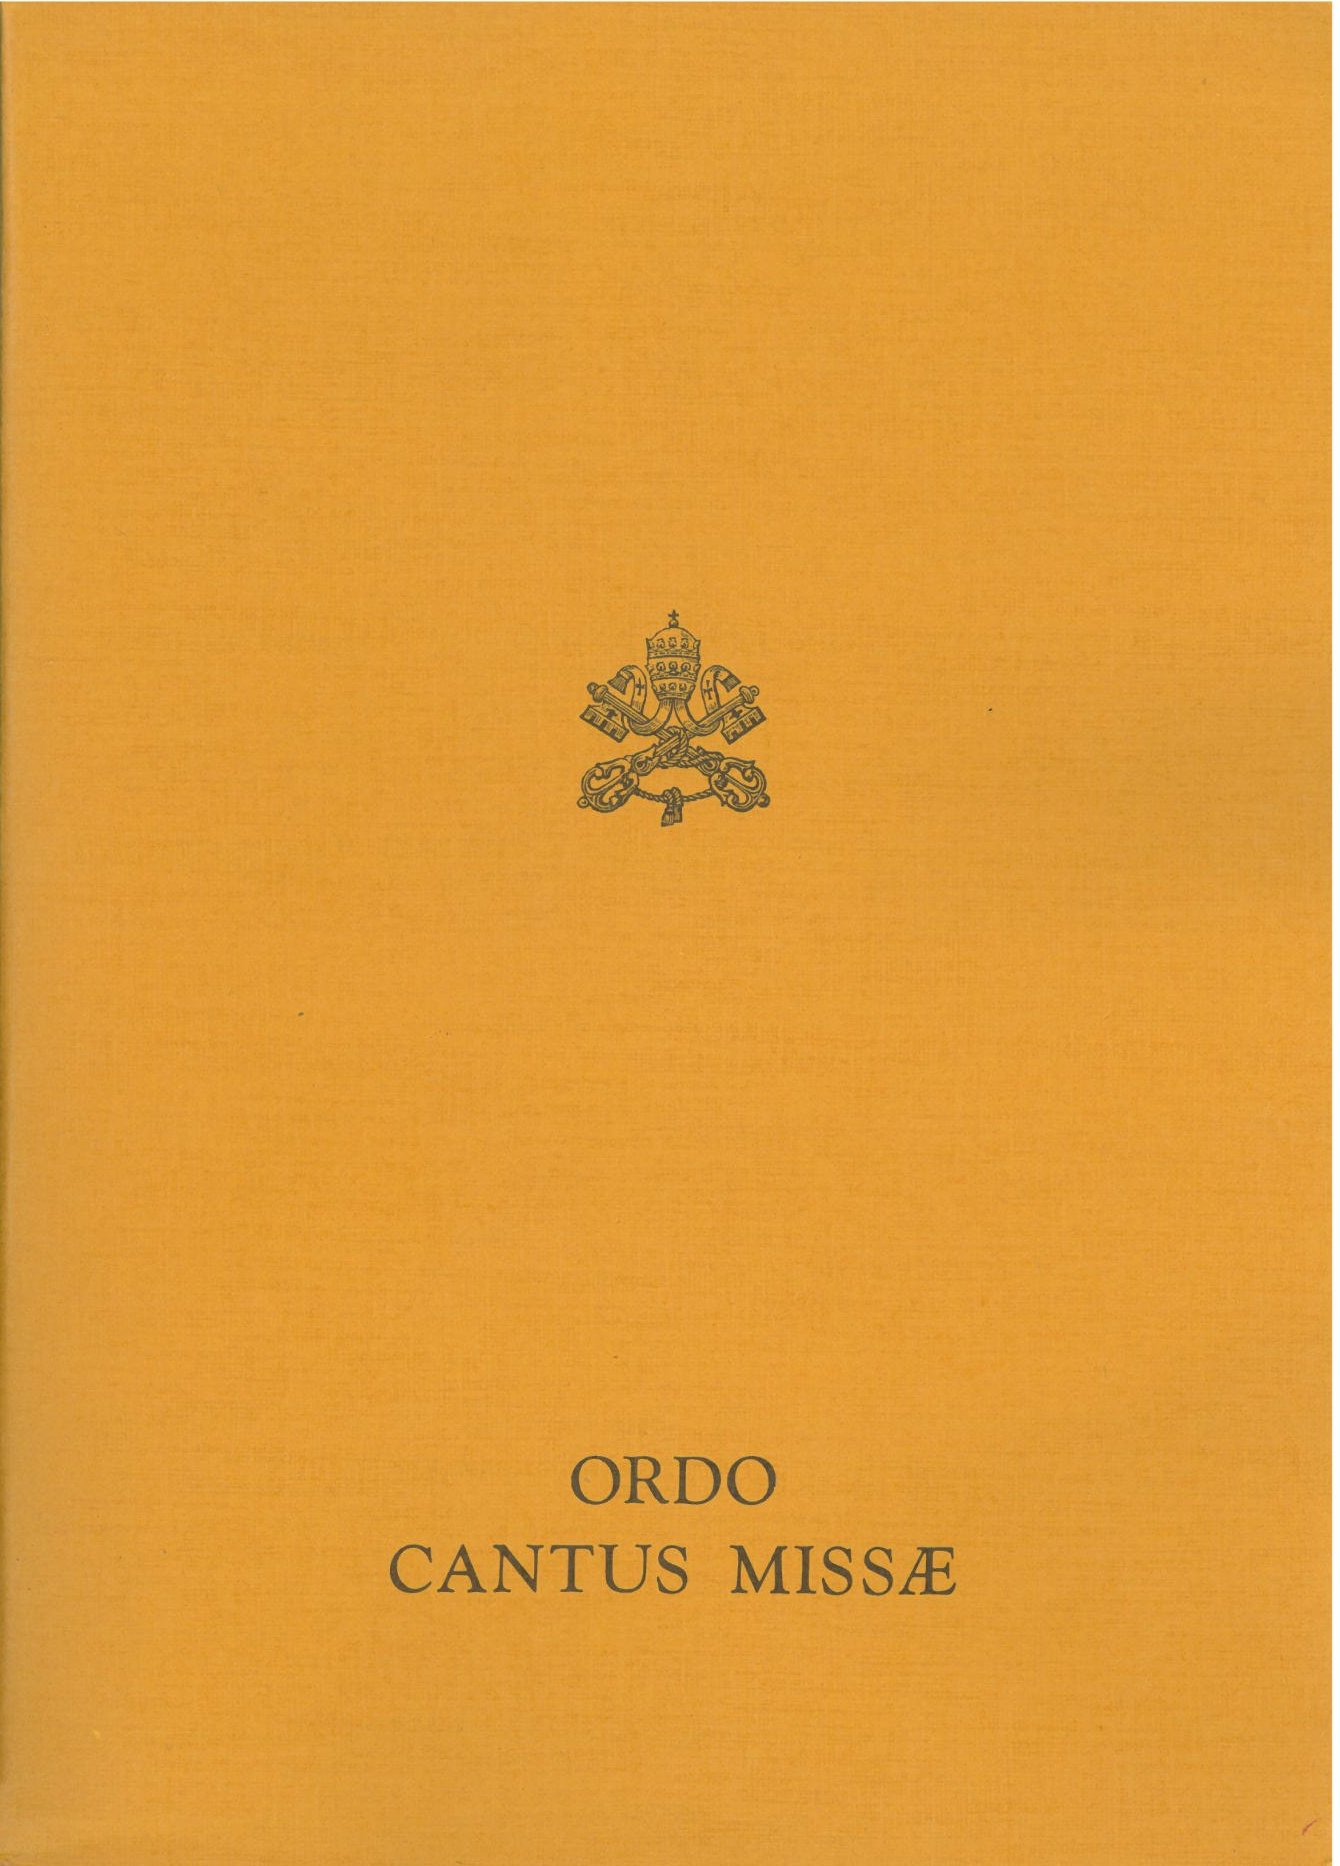 Liturgical Books of the Ordinary Form of the Roman Rite